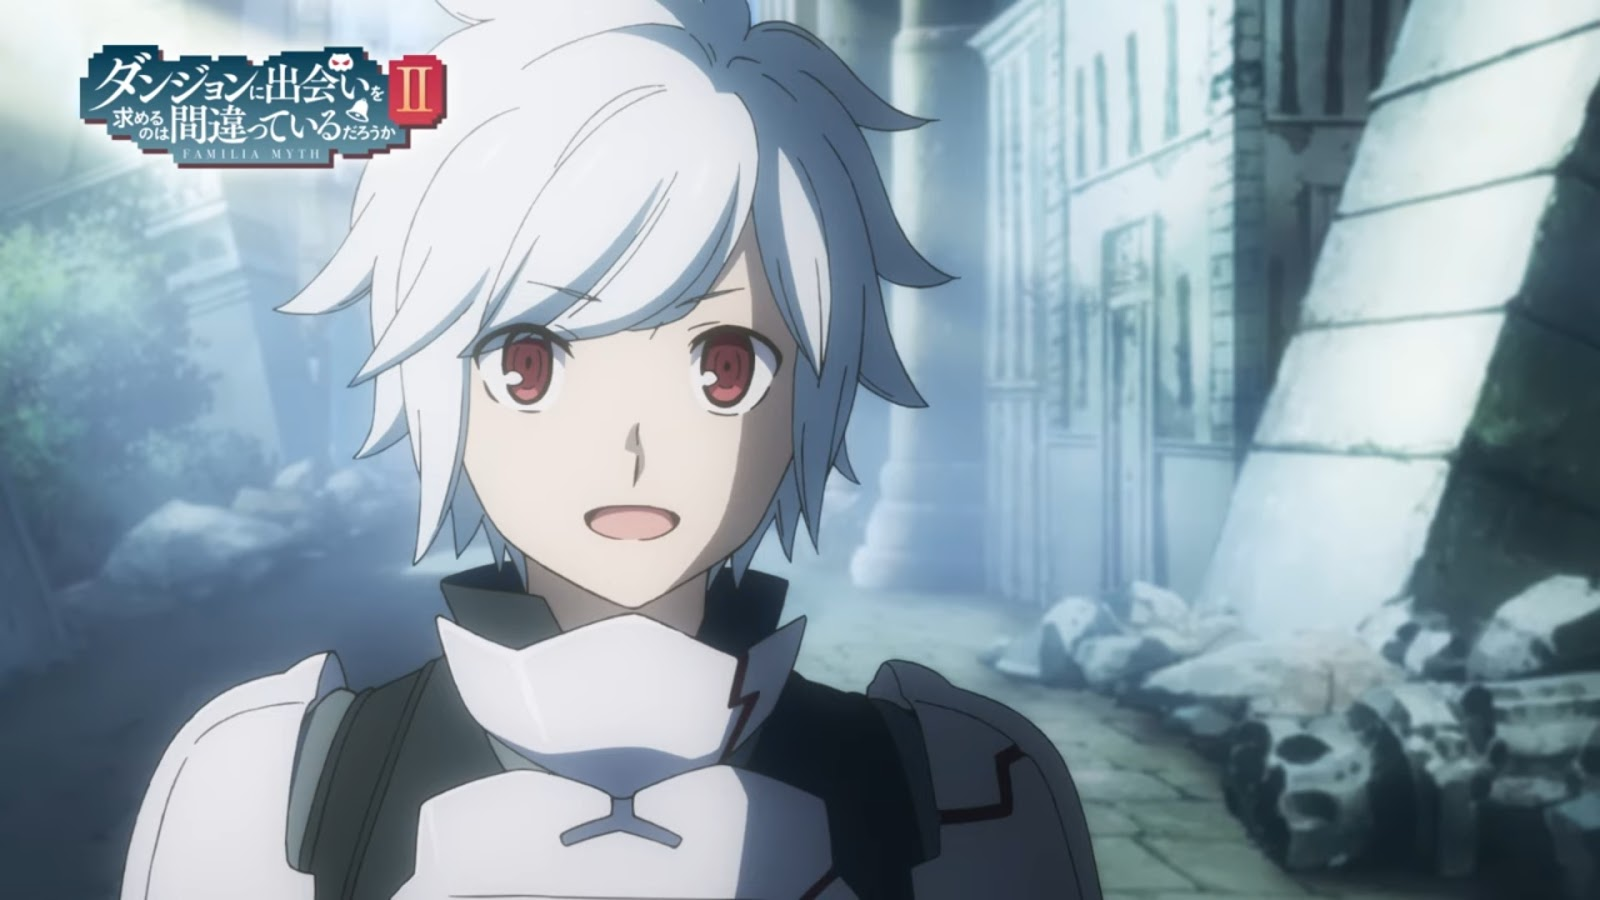 DanMachi Season 2 episode 4 Release date, Official Synopsis, Preview Images, Preview Trailer